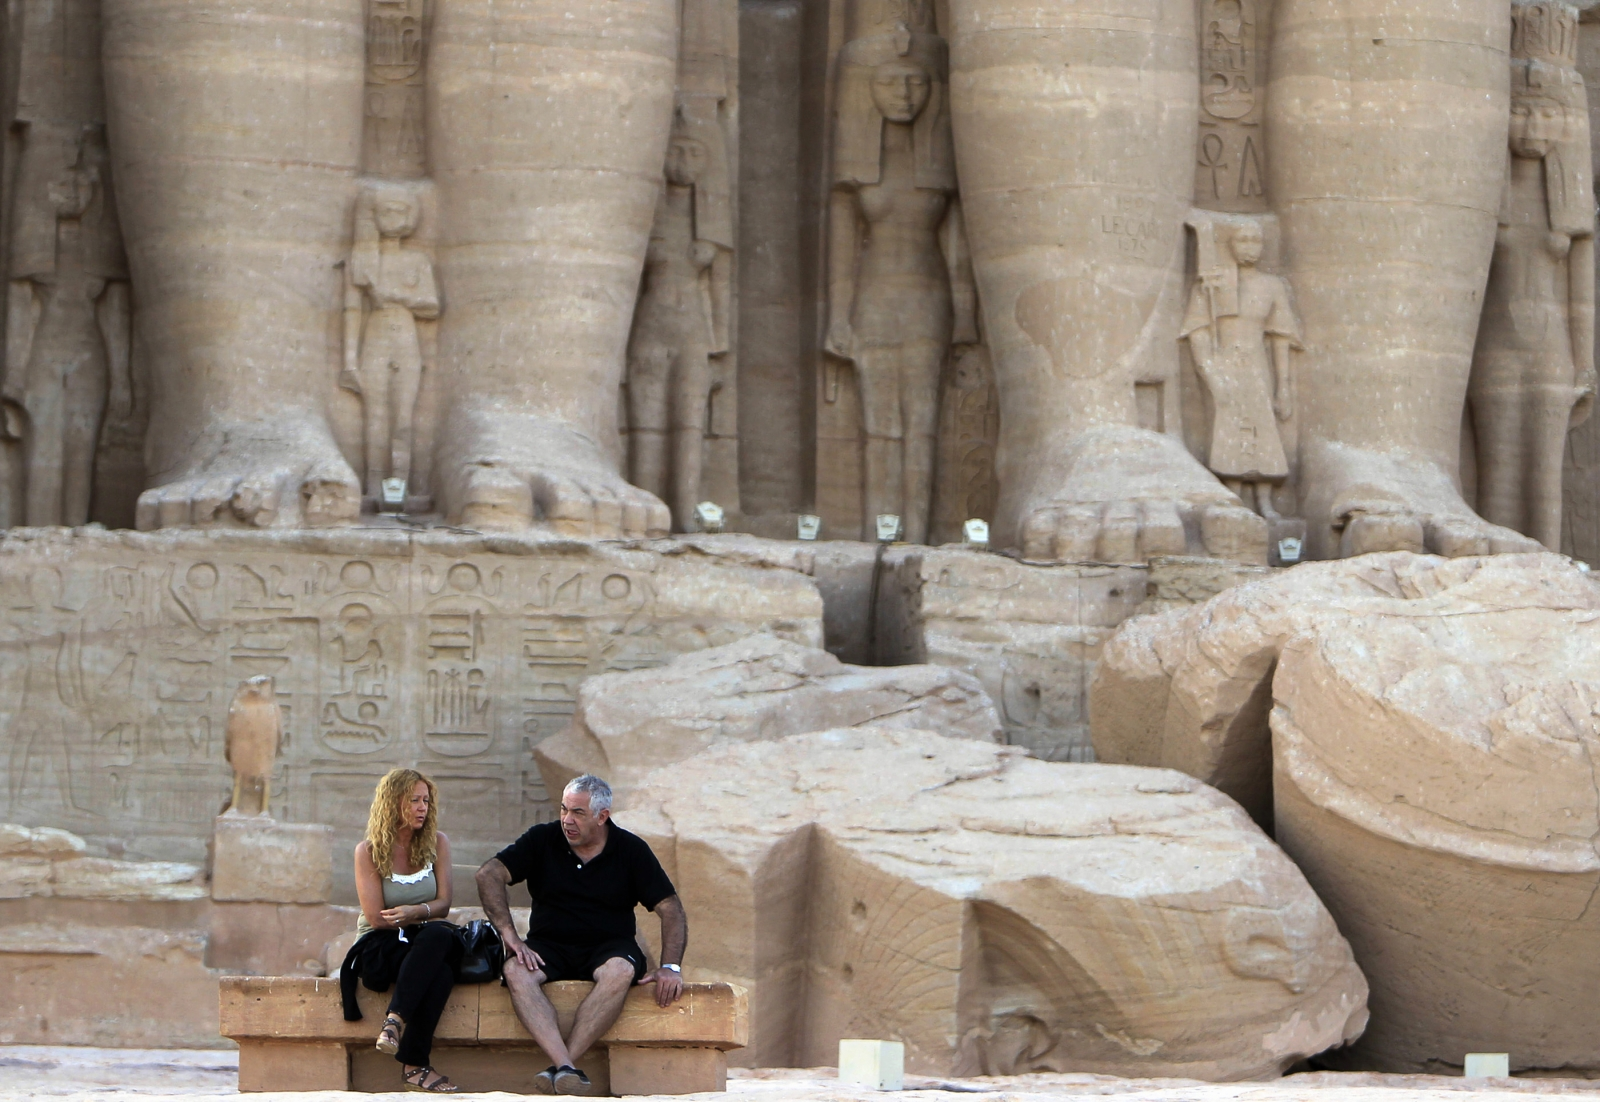 Egypt tourists